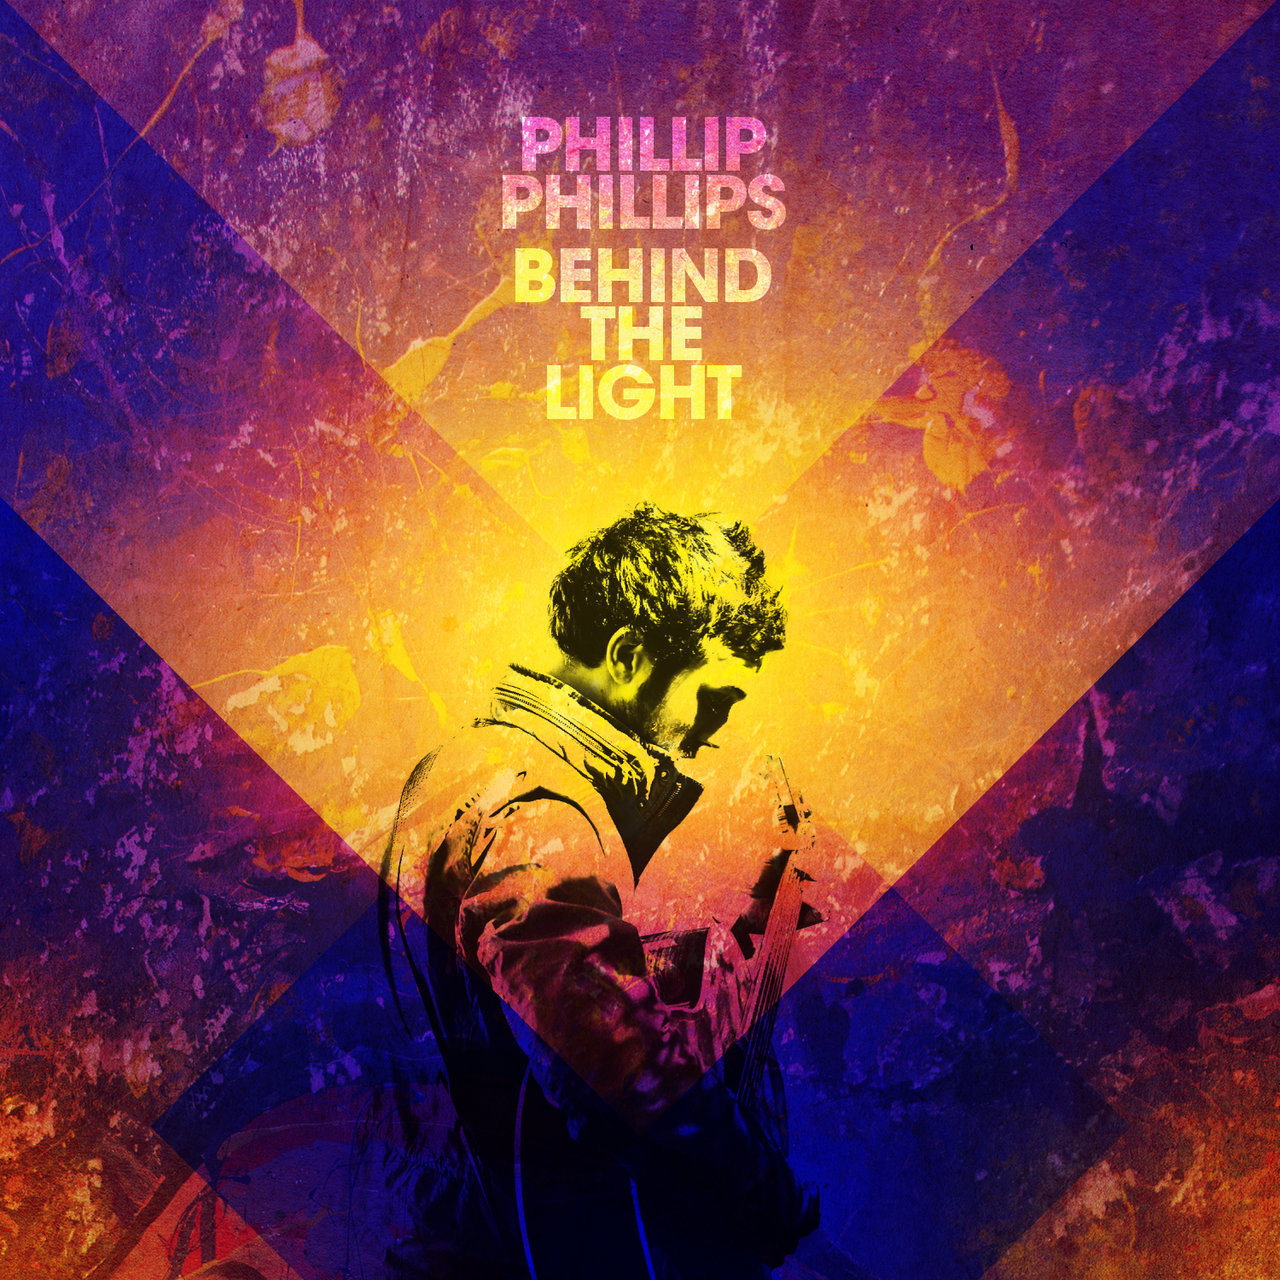 PhillipPhillips_BehindTheLight.jpg